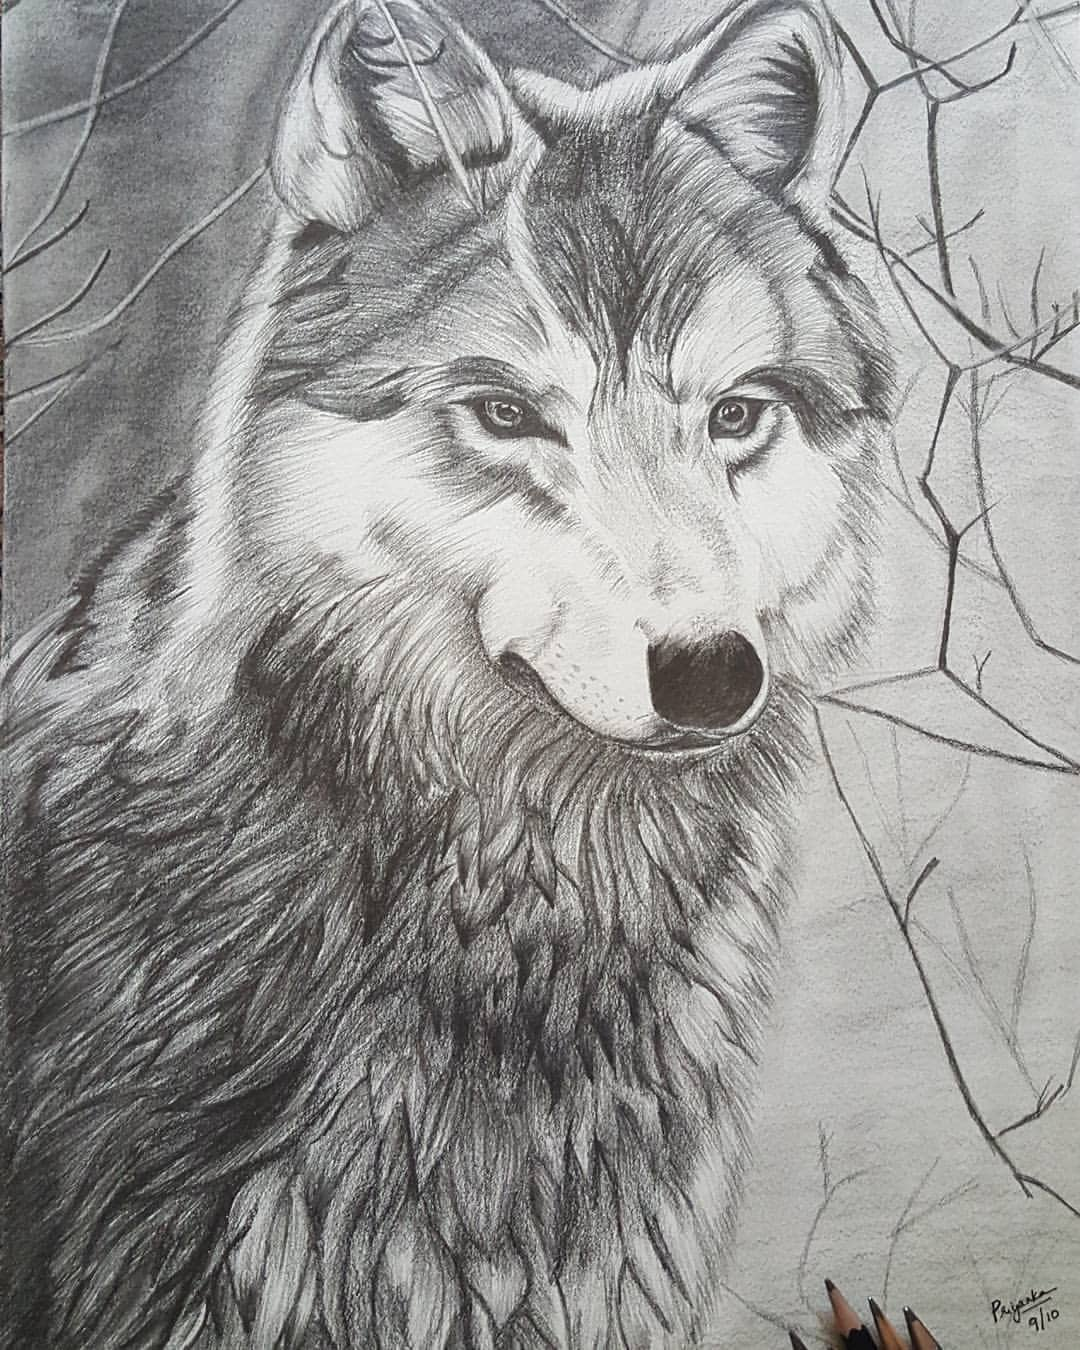 The lone wolf pencil sketch pencil artwolf pencil art wolf wall decor wolf wall hanging animal art animal gift ideas wolf framewolf